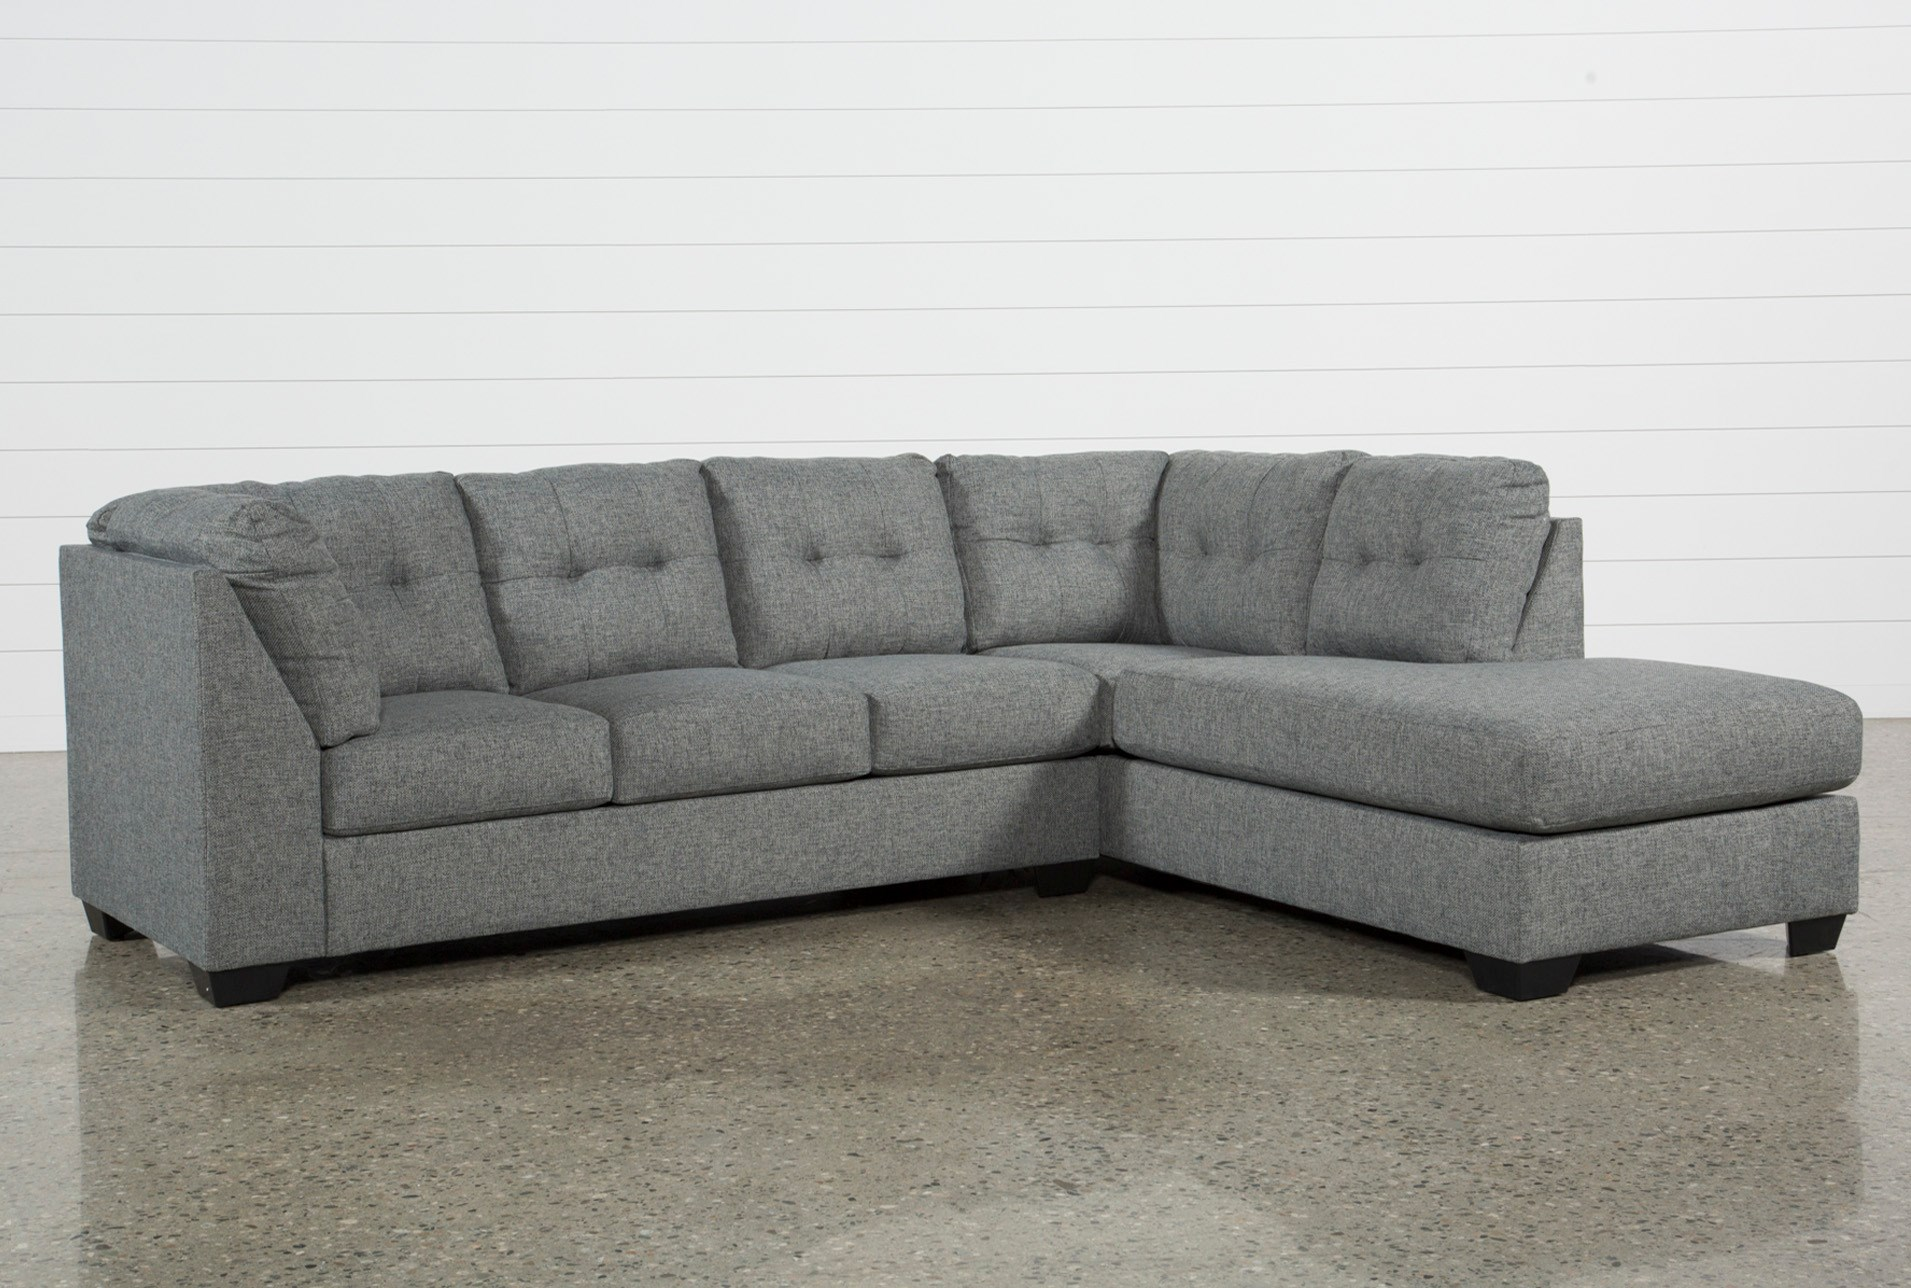 brayden pdx wayfair sectional sleeper reviews with stigall studio chaise furniture ottoman